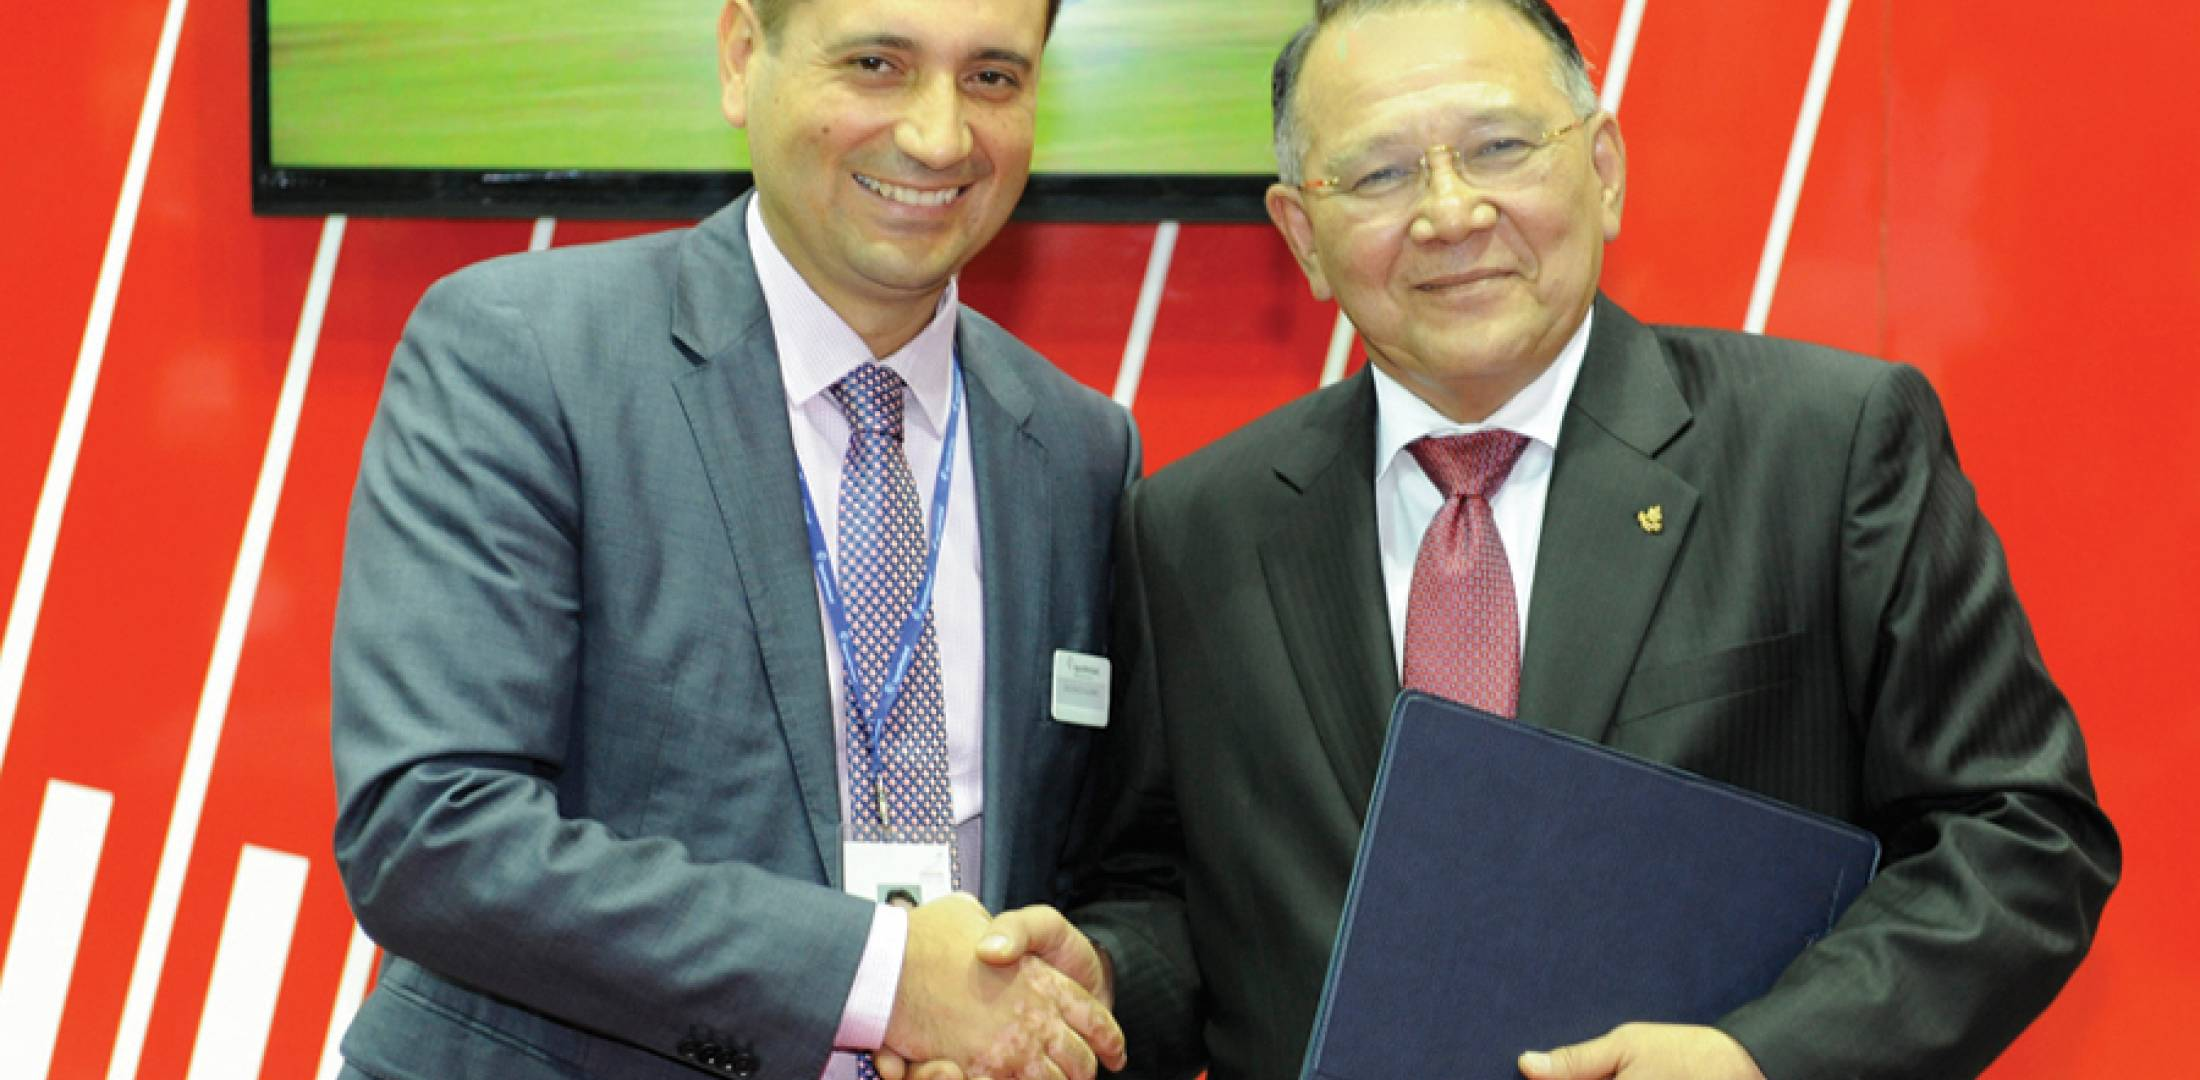 Vincenzo Alaimo, managing director for AgustaWestland in Malaysia, signed a deal for 11 AW139s with Westar CEO Y. Bhg. General Tan Sri Muhammad Ismail Jamaluddin.